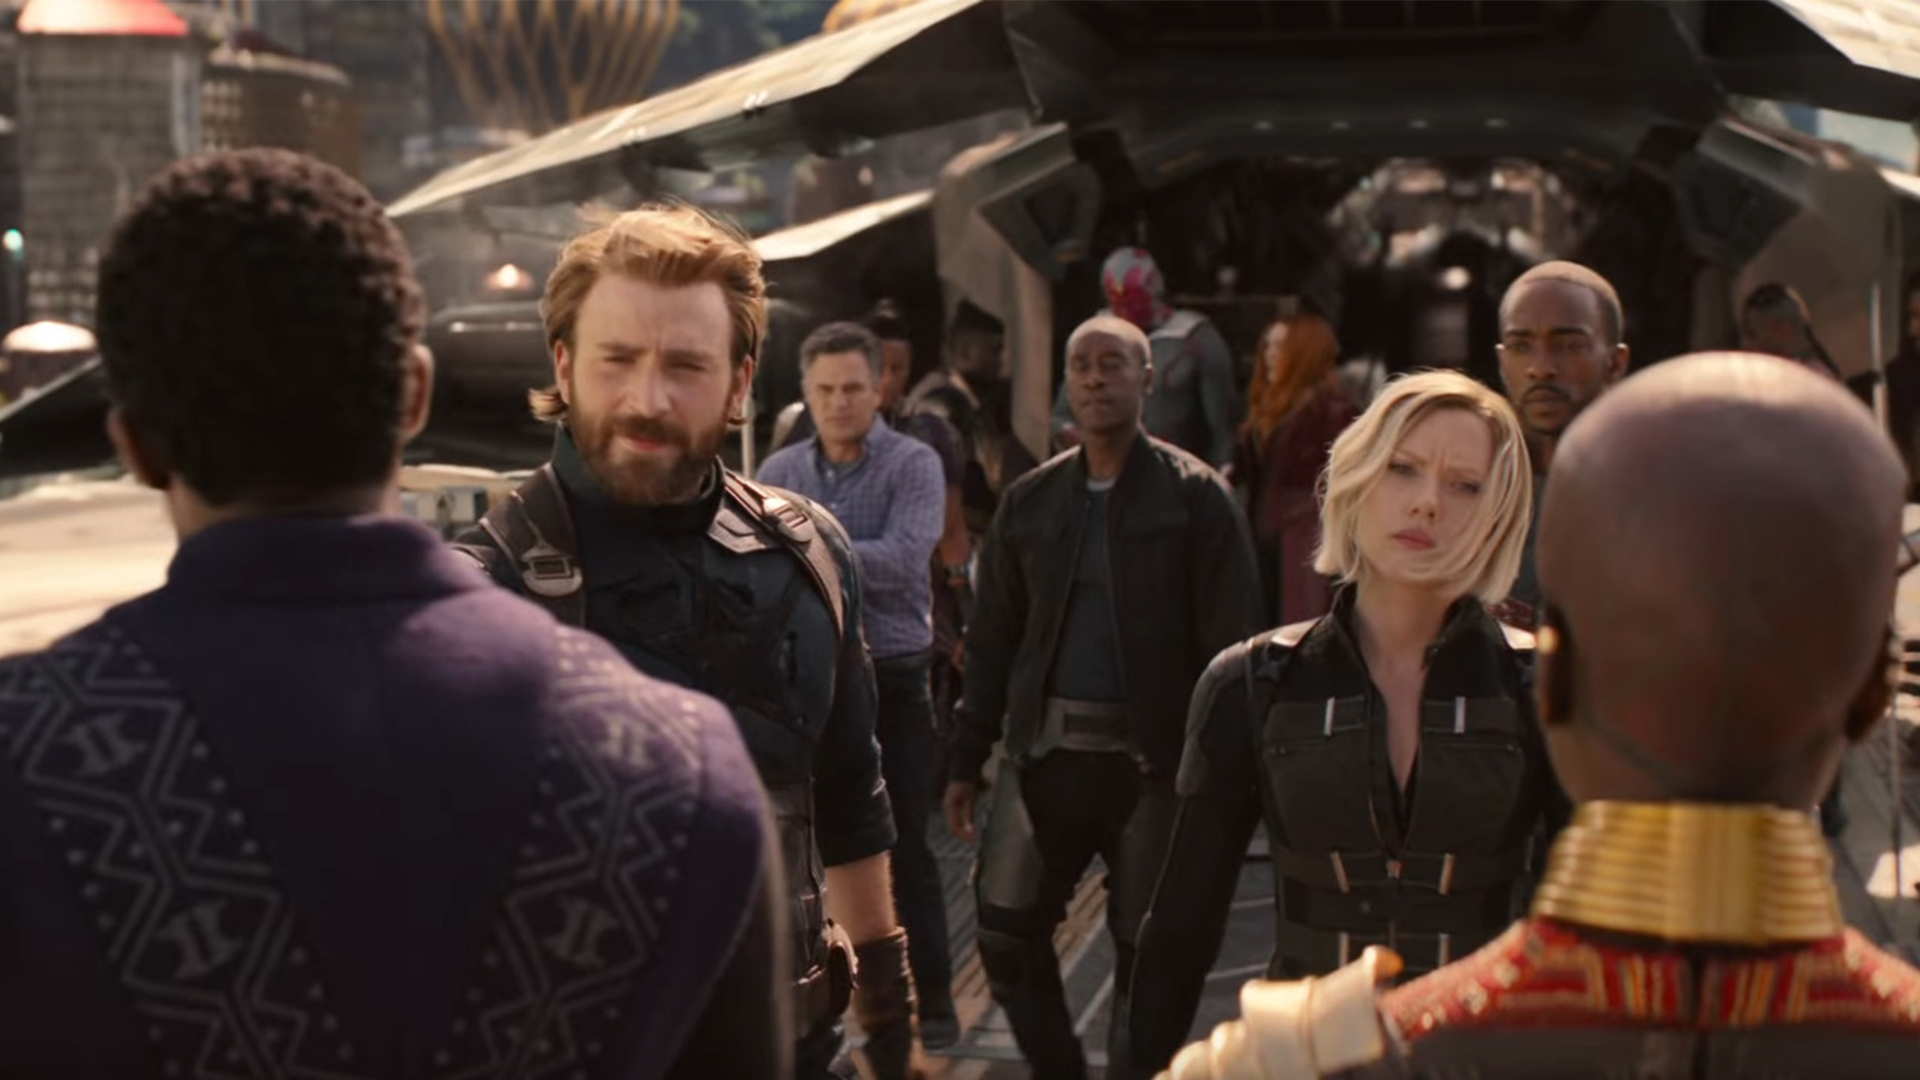 7 best lines from 'Avengers: Infinity War' trailer